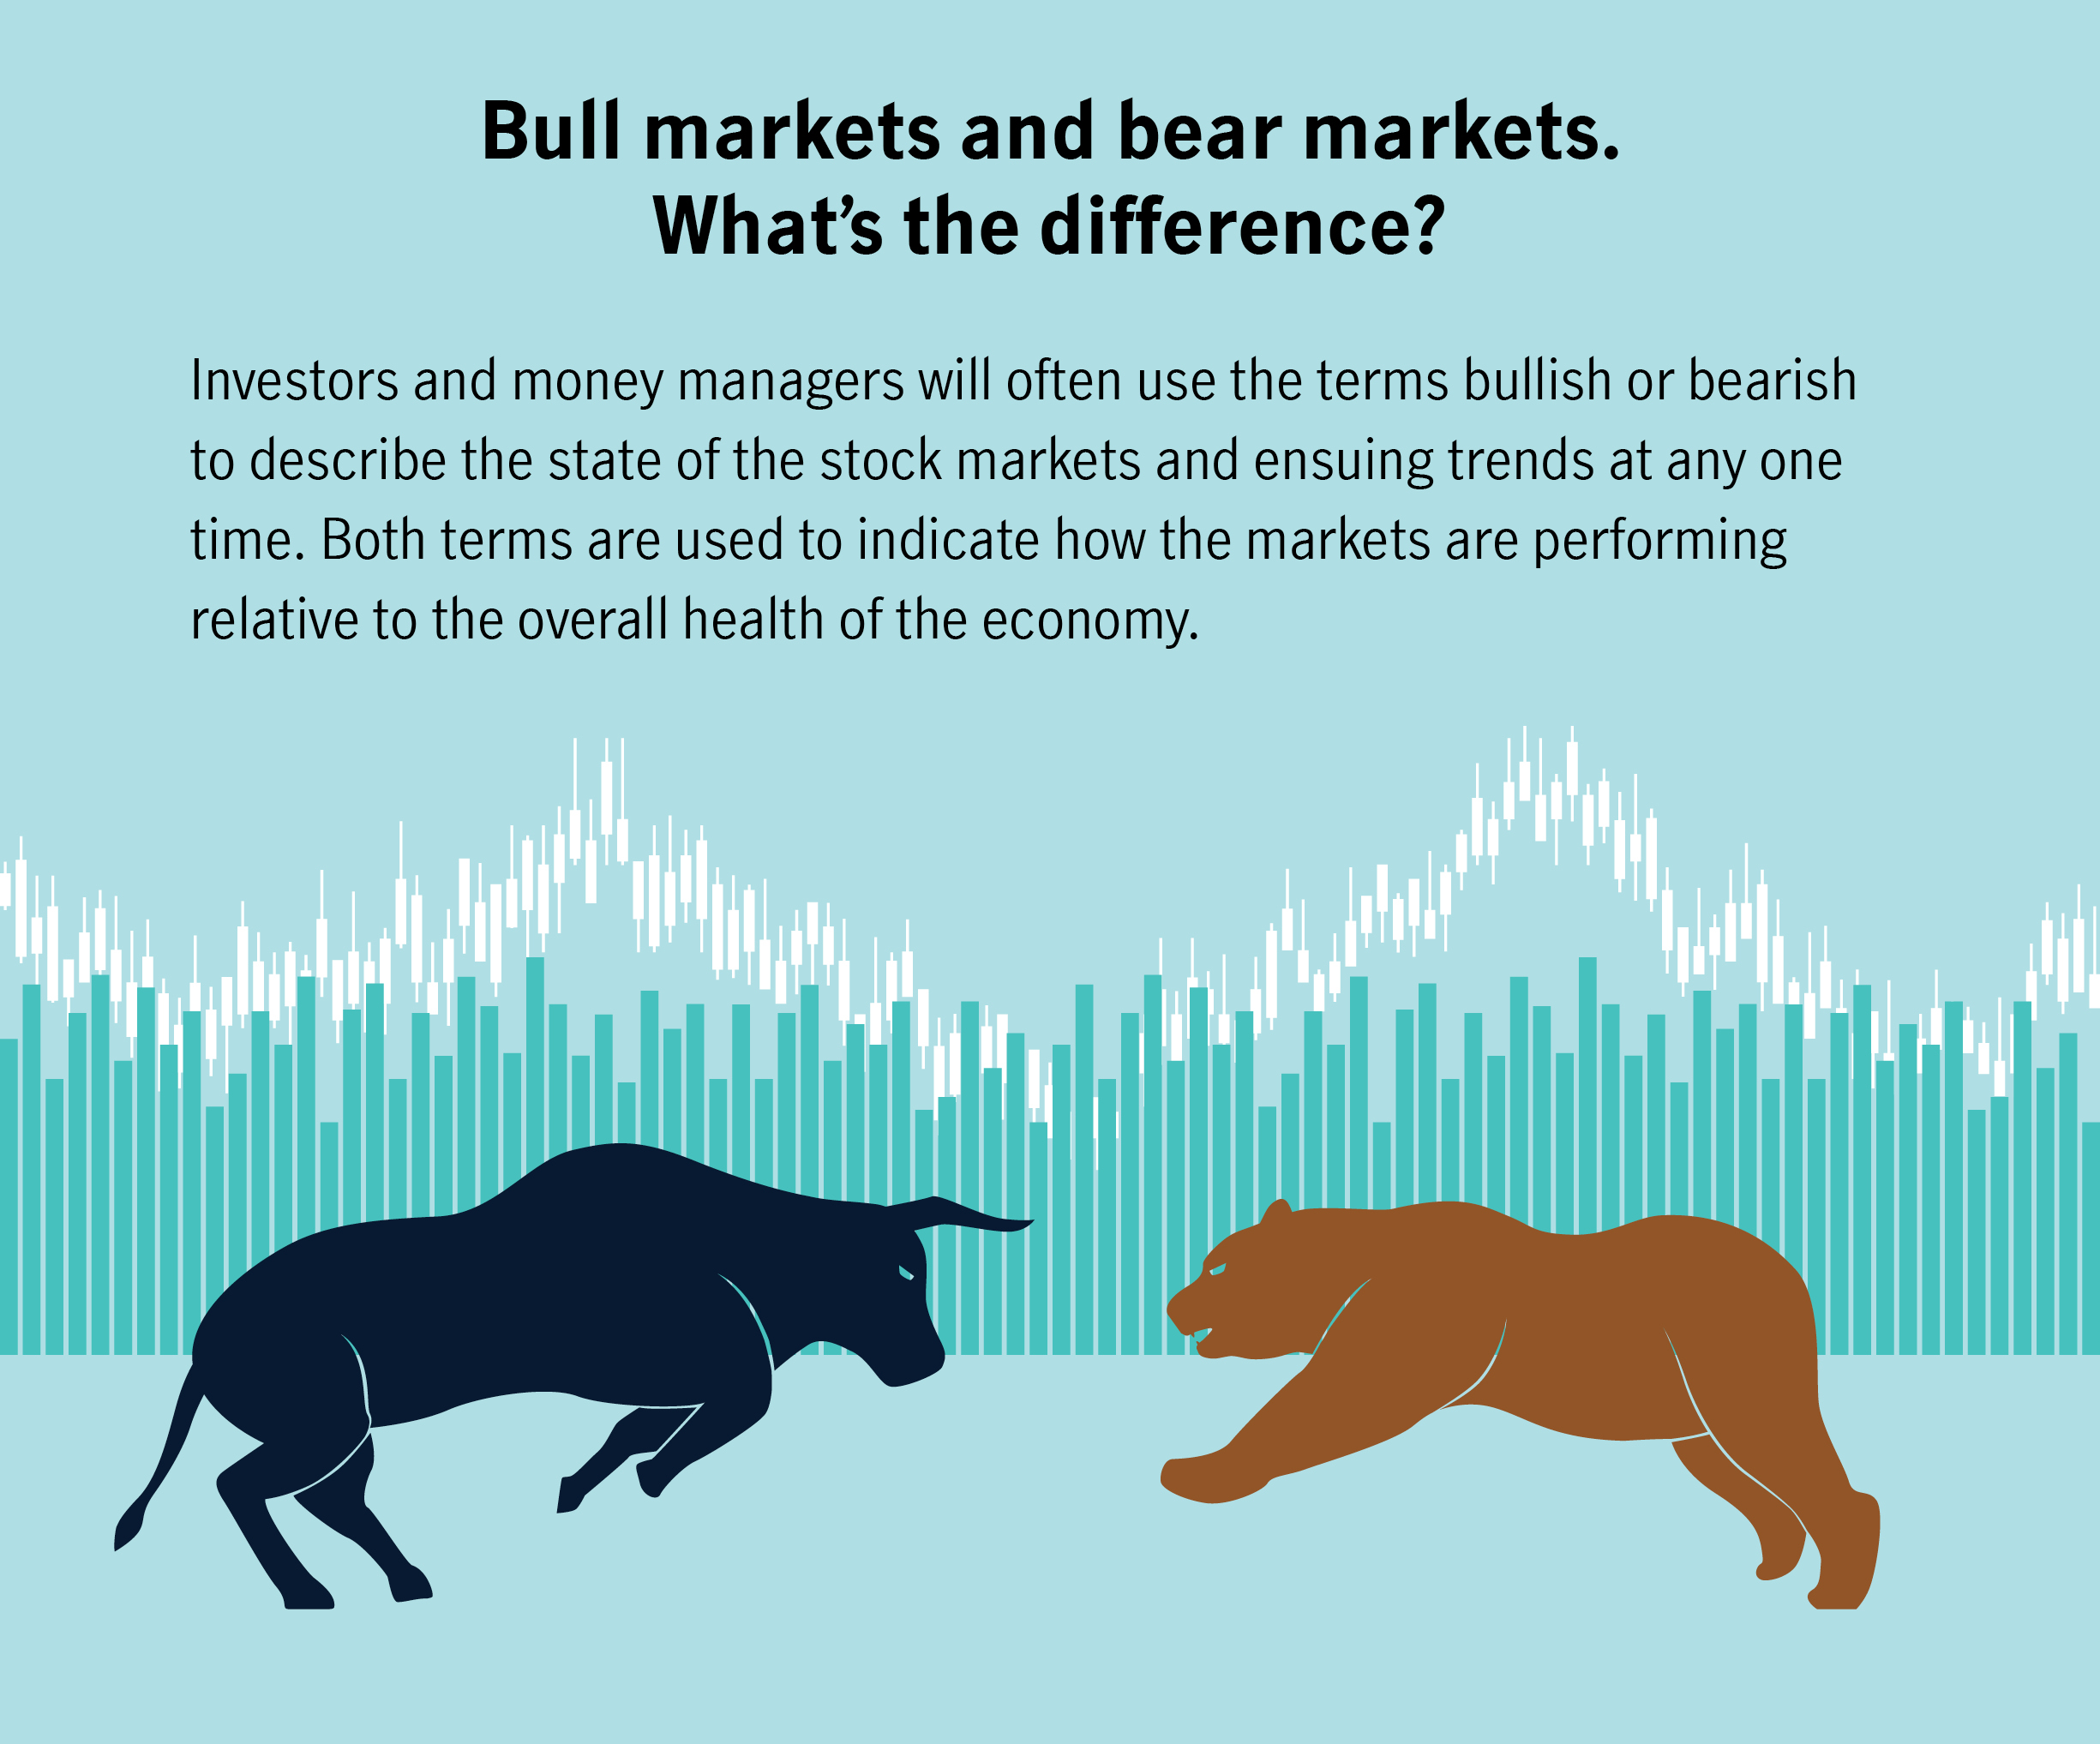 "Bull markets and bear markets – what's the difference? Investors and money managers often use the terms ""bullish"" and ""bearish"" to describe the state of the stock markets and related trends at any given time. Both terms capture investor sentiment to characterize how the markets are performing, as well as the overall health of the economy."